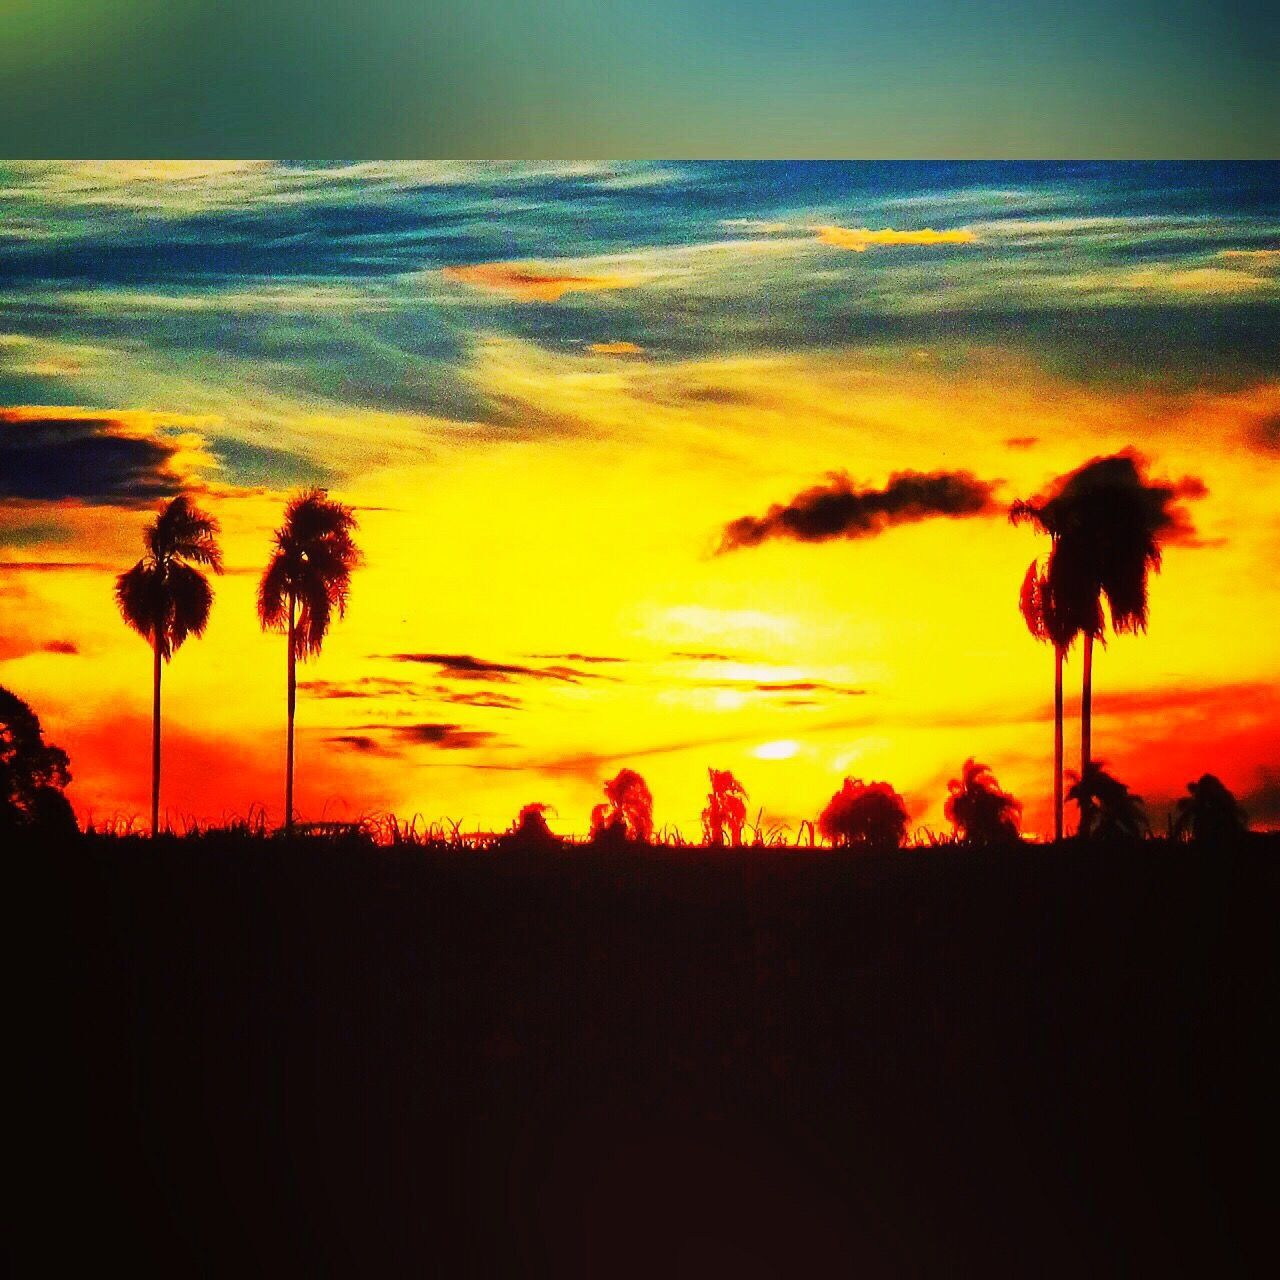 sunset, silhouette, beauty in nature, nature, tranquil scene, sky, scenics, orange color, tranquility, plant, growth, field, no people, outdoors, landscape, cloud - sky, palm tree, tree, flower, day